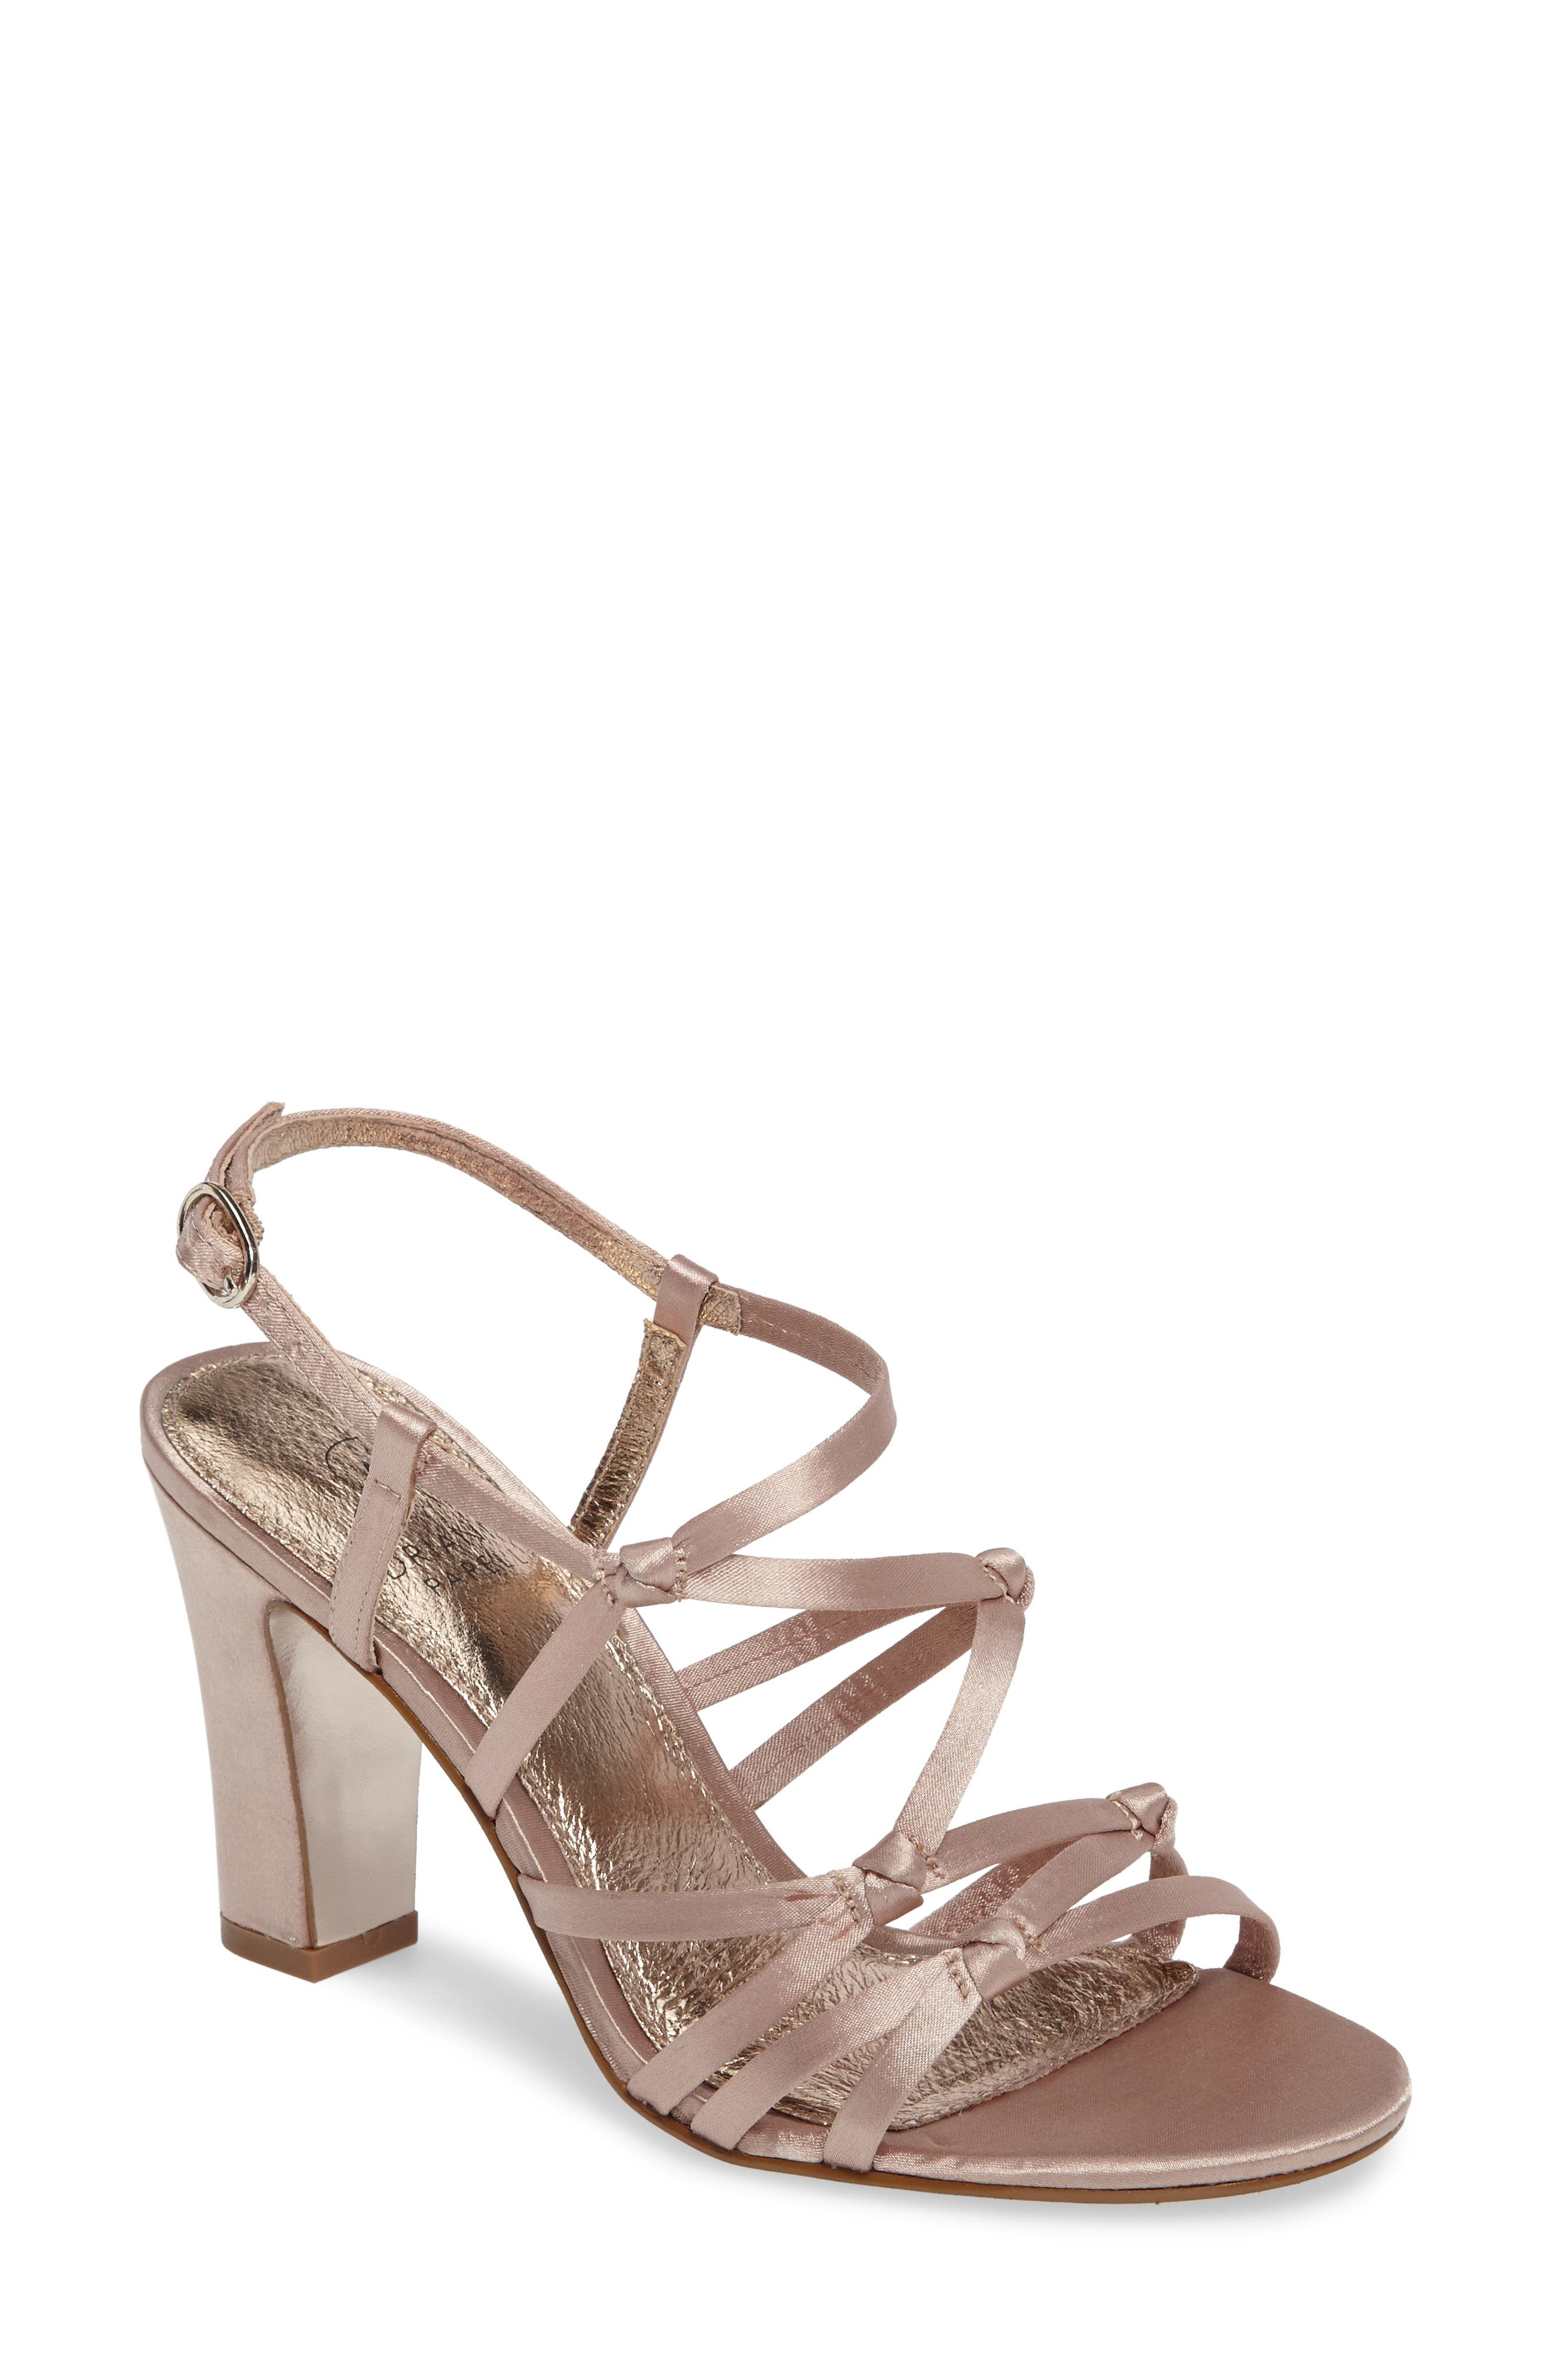 Main Image - Adrianna Papell Adelson Knotted Strappy Sandal (Women)